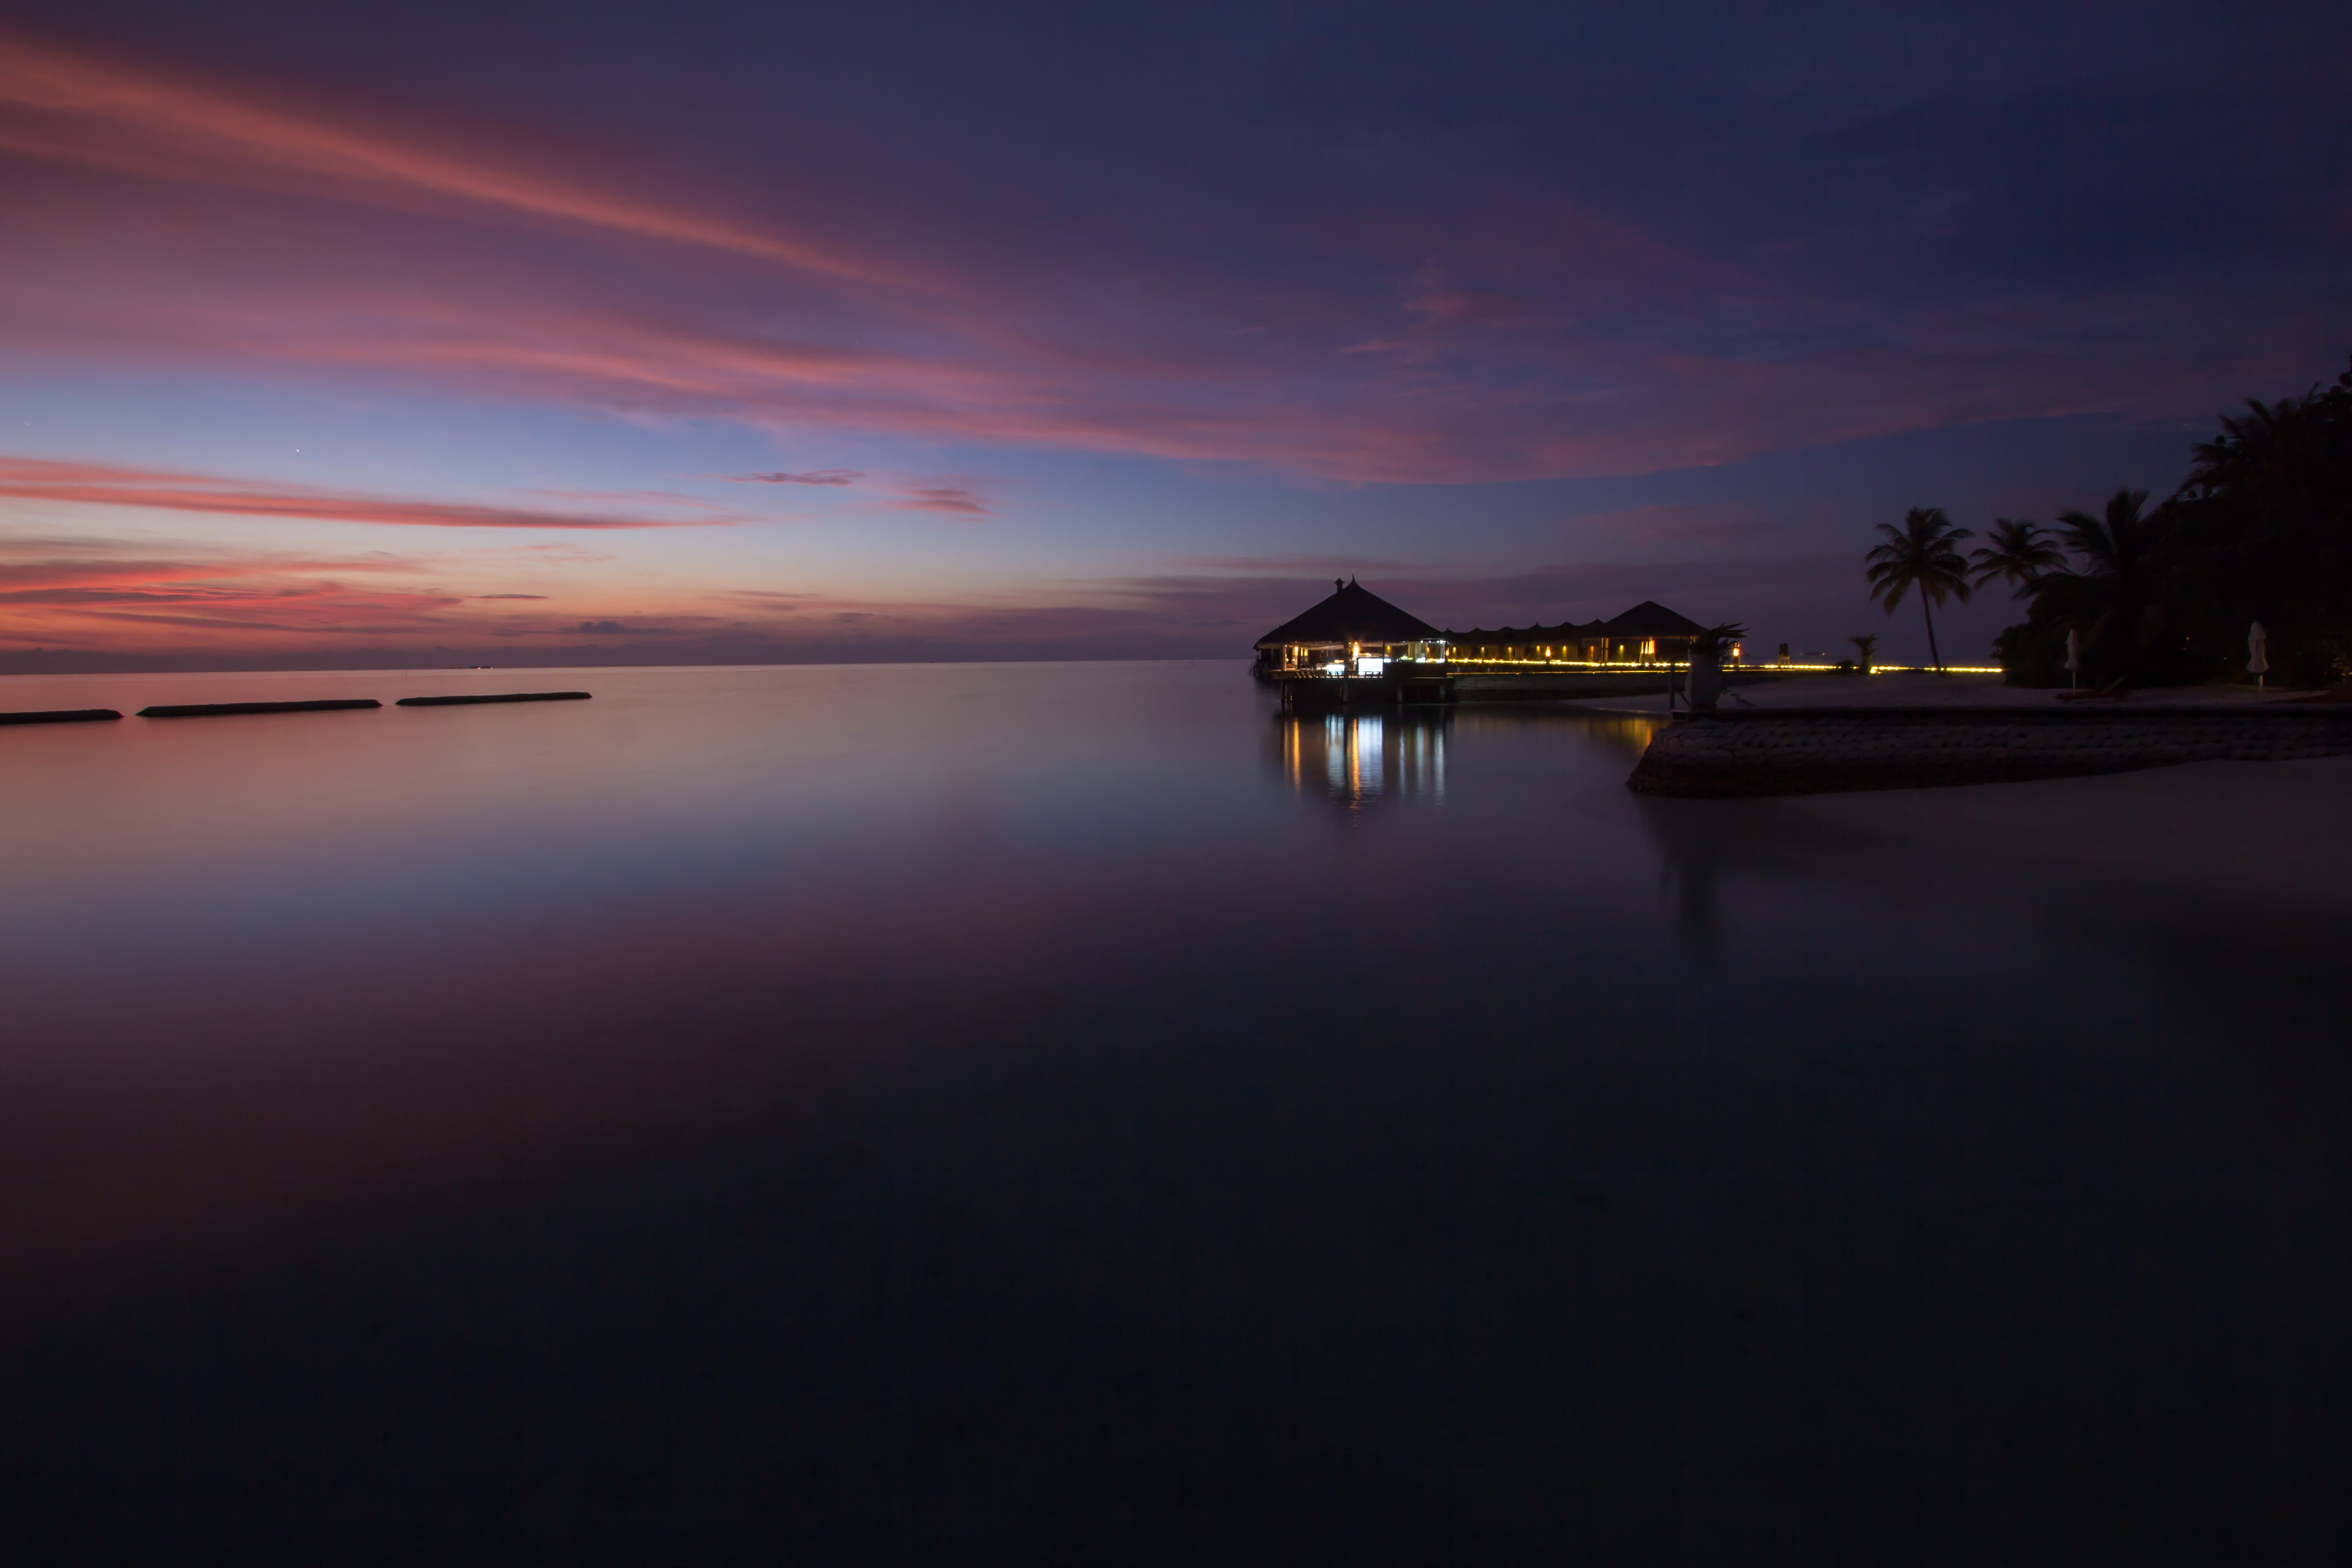 Sunset in the Maldives